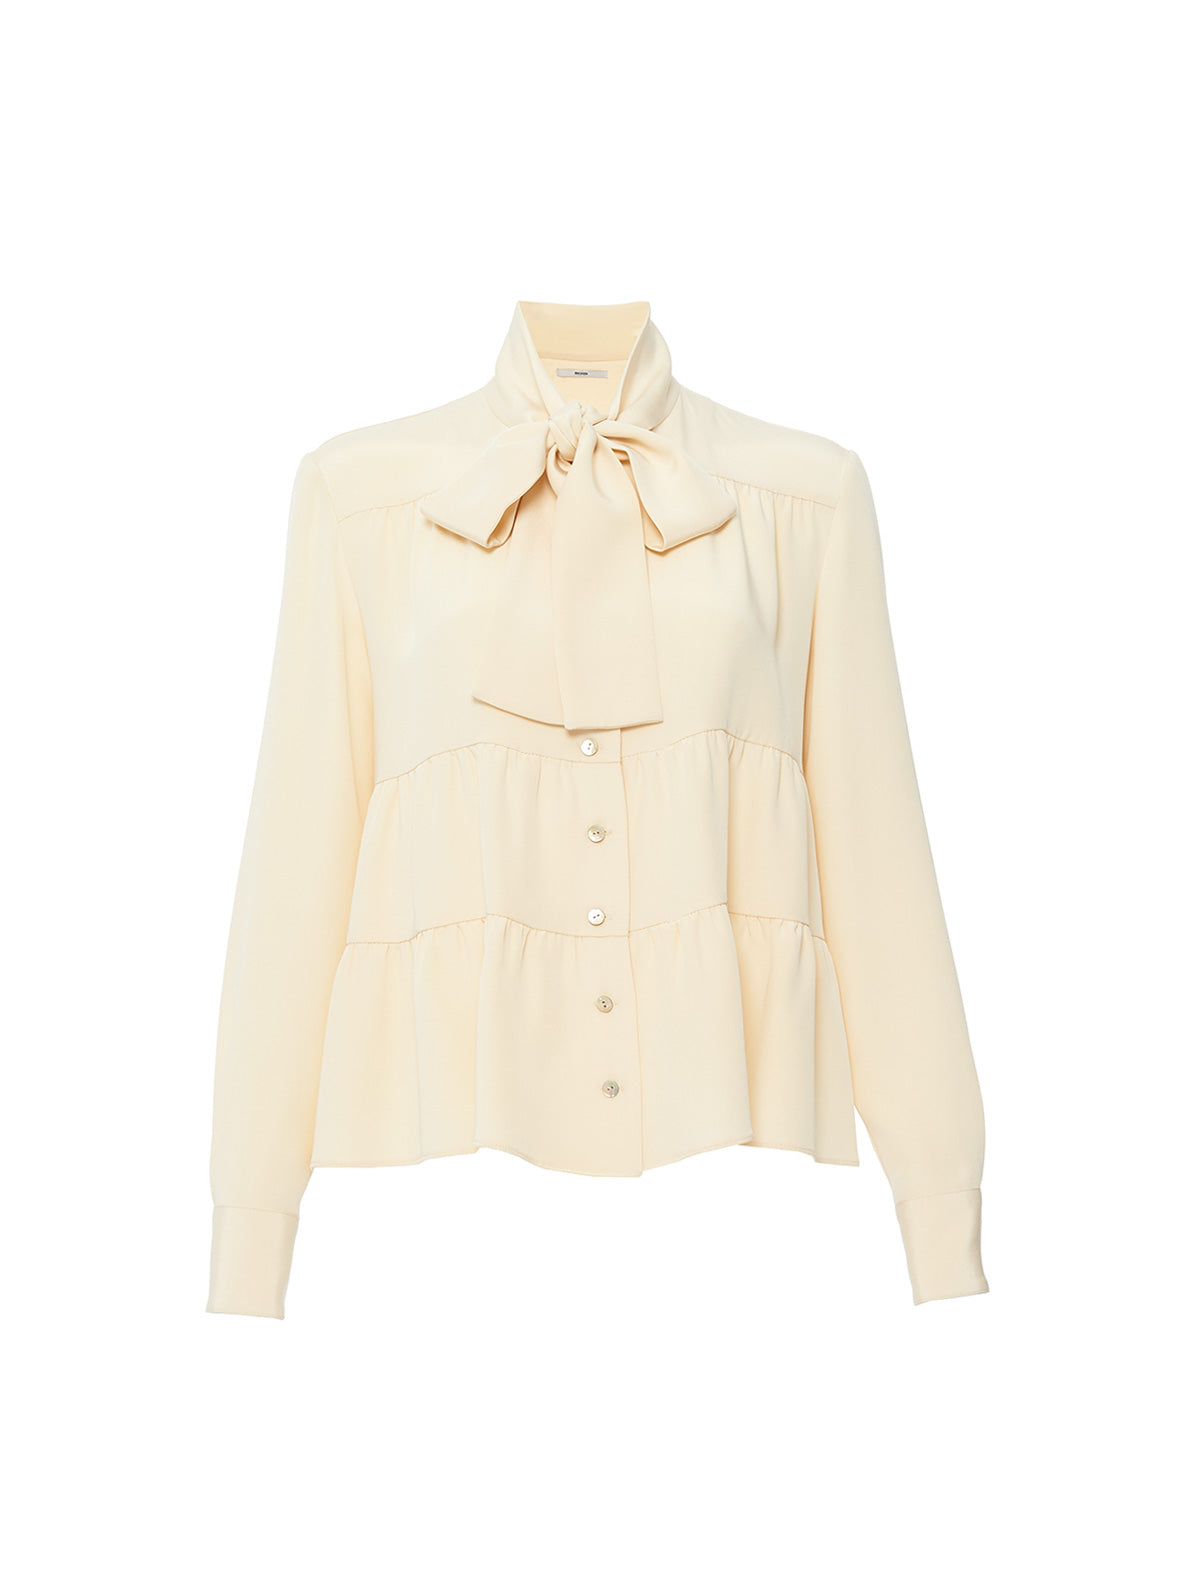 TIERED TIE BLOUSE, PEACHY IVORY<br> PRE-ORDER